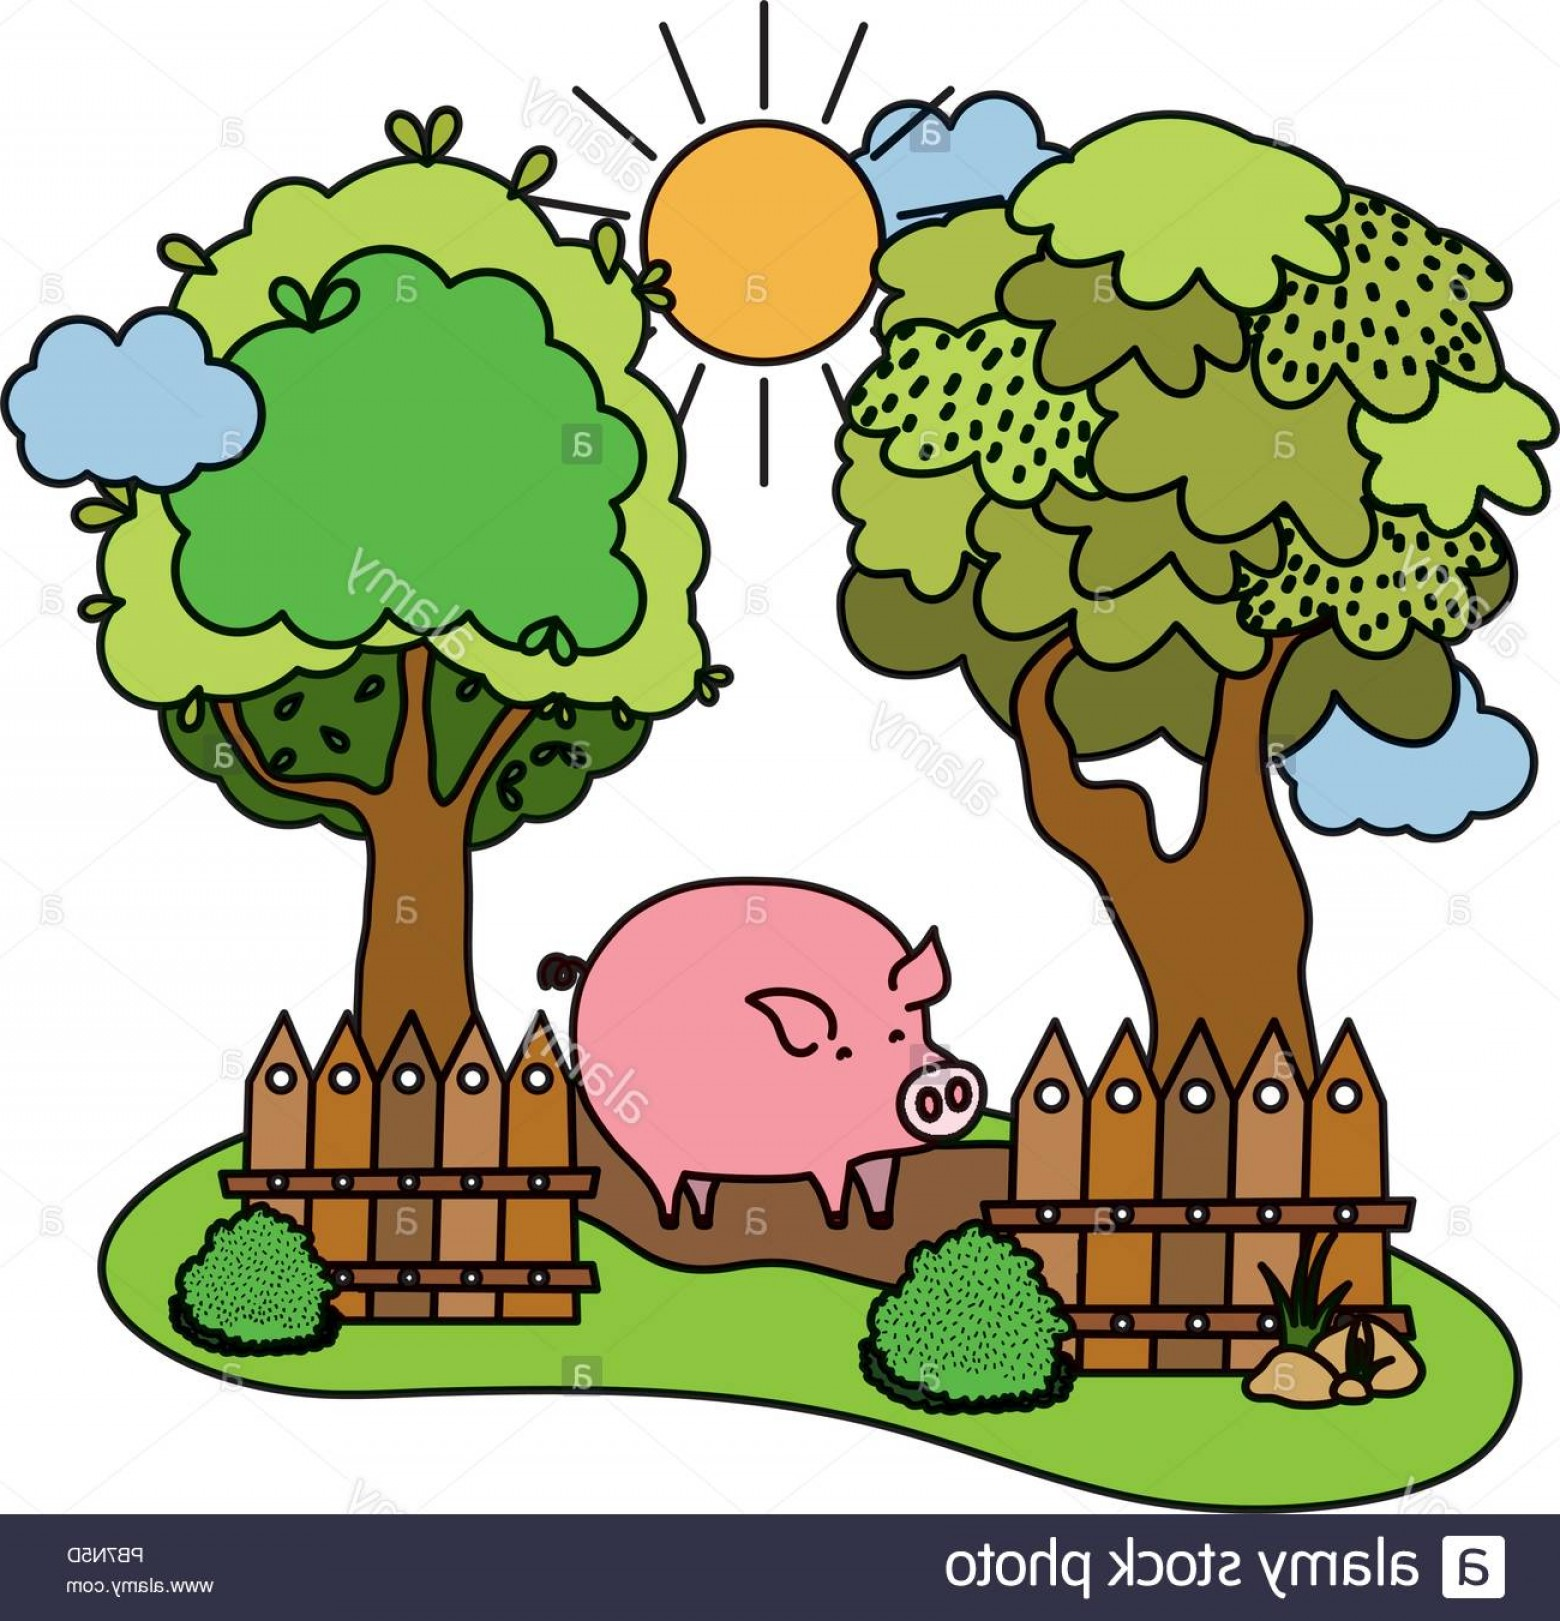 Swamp Vector Art: Color Pig Animal In The Swamp Farm And Trees Image